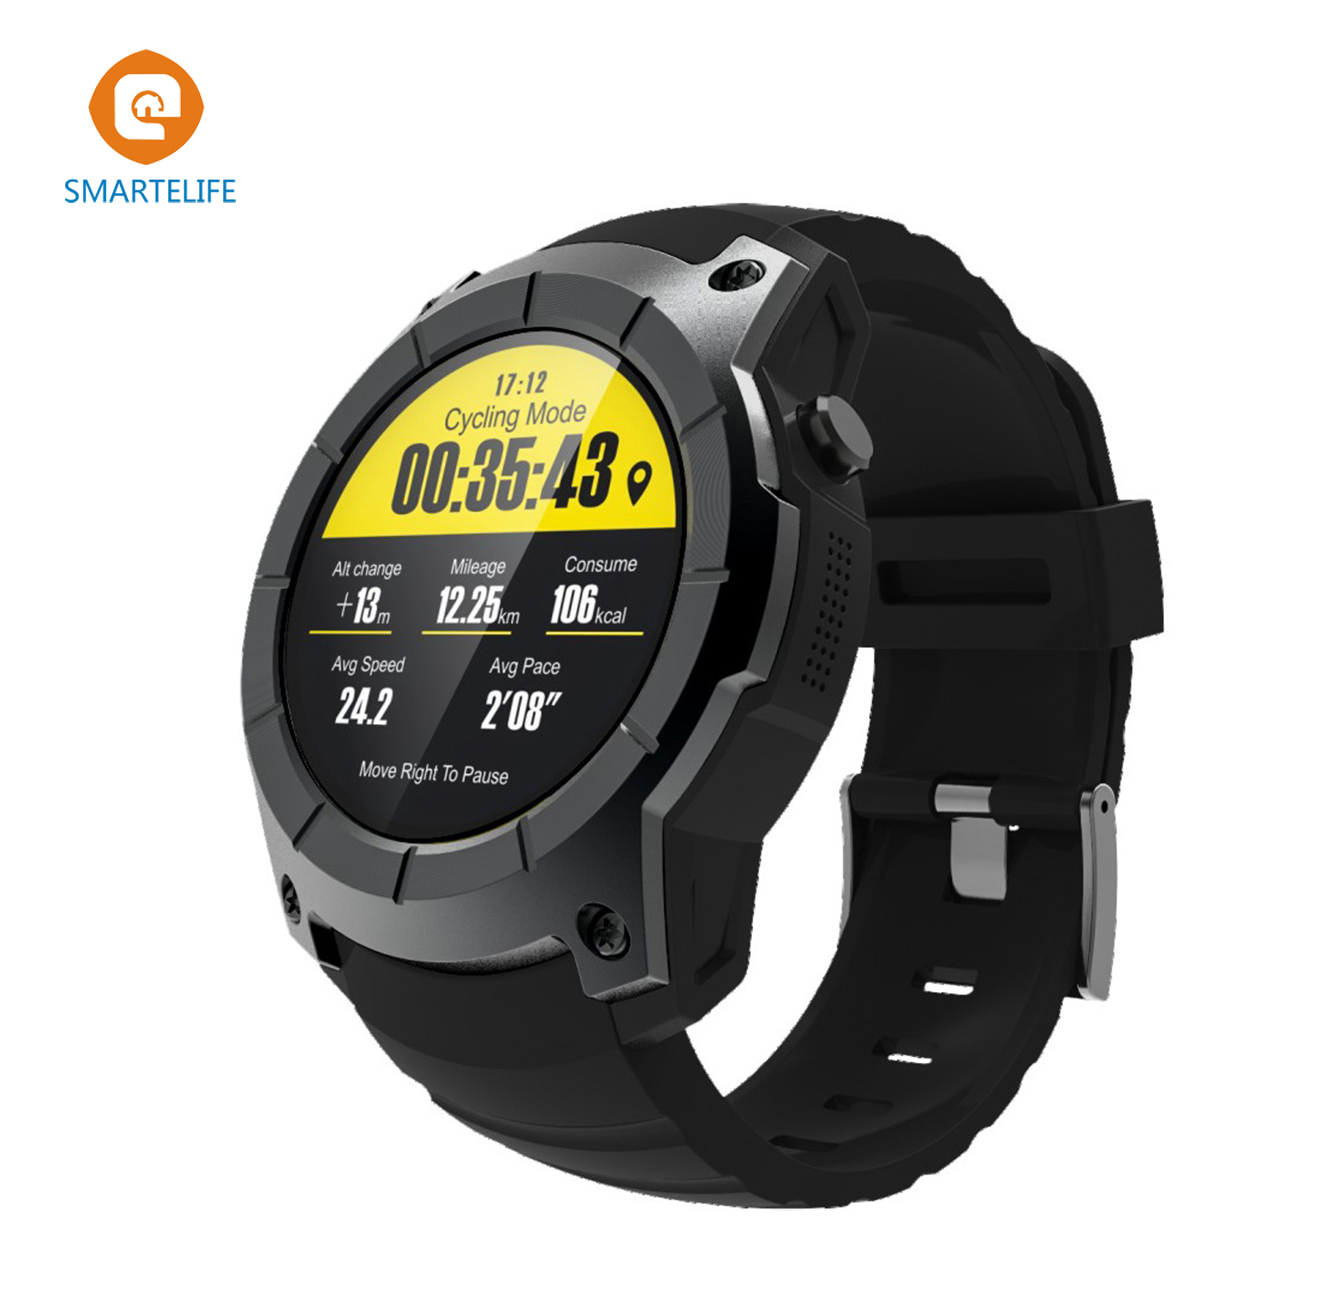 SMARTELIFE GPS Cycling Running Sport Smart Watch Phone with Heart Rate Monitor Pressure GSM Bluetooth Smartwatch for ISO Android gs8 1 3 inch bluetooth smart watch sport wristwatch with gps heart rate monitor pedometer support sim card for ios android phone